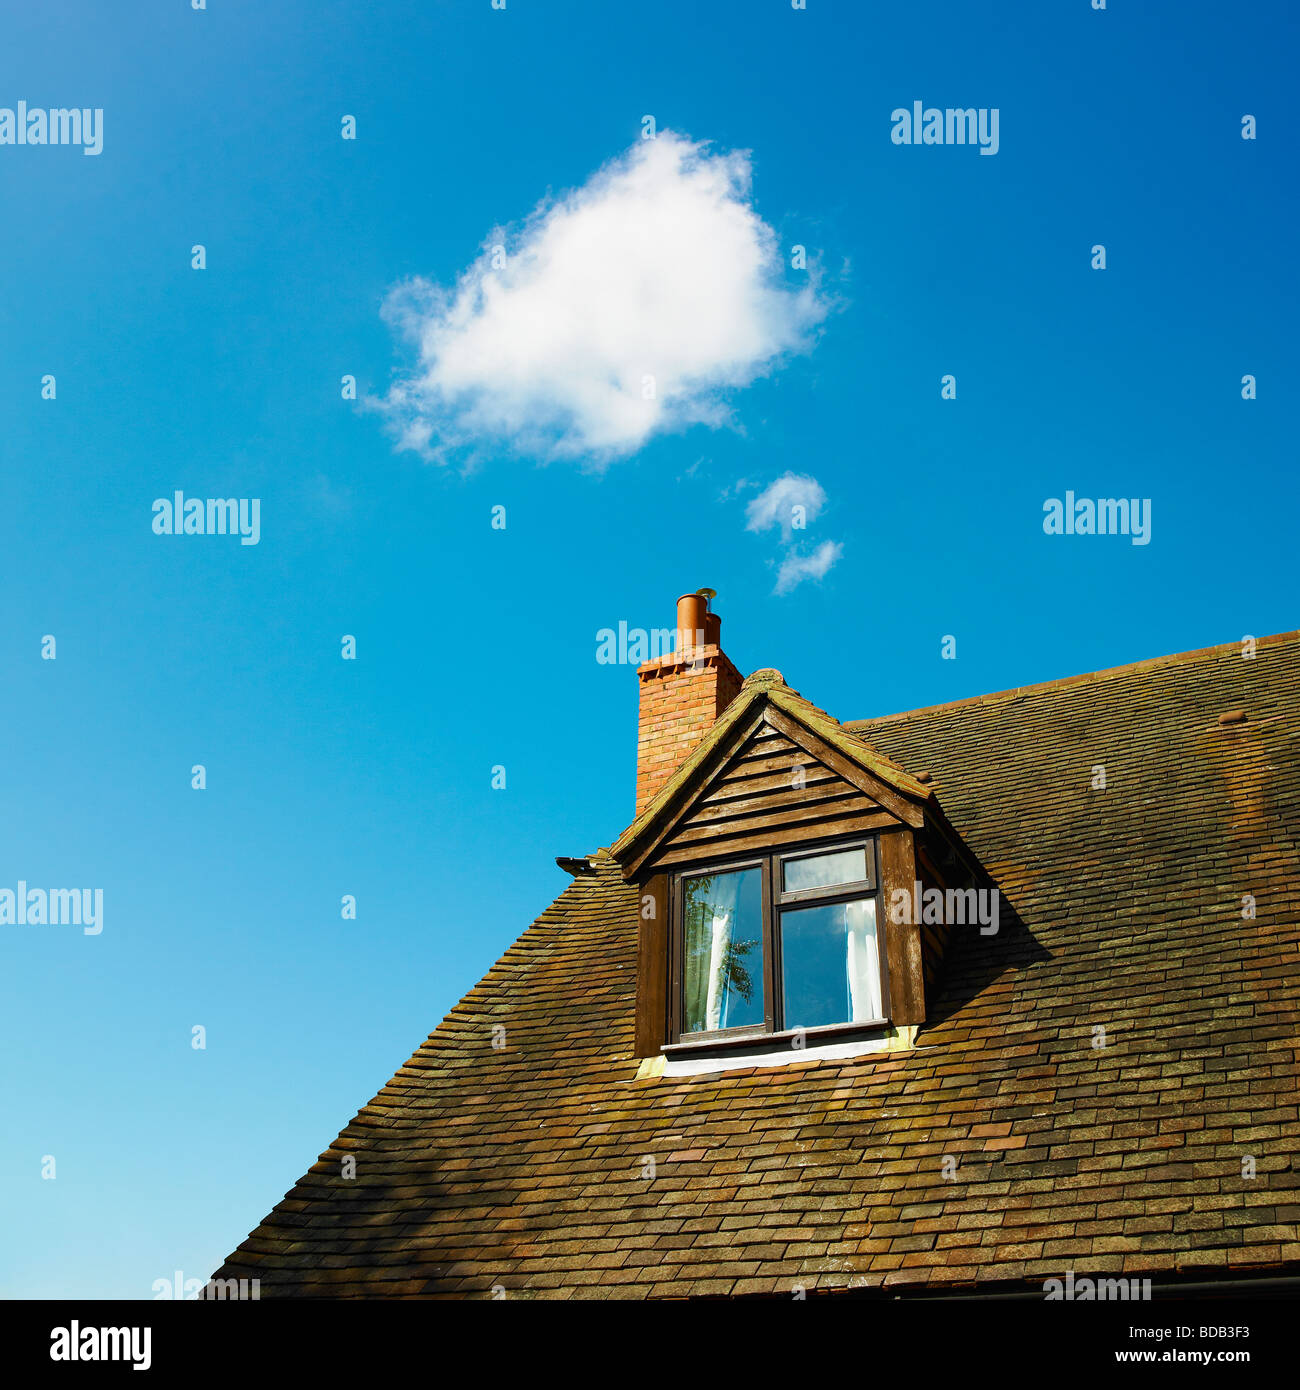 Casa con nube y cielo azul - cloud computing - home office. Imagen De Stock